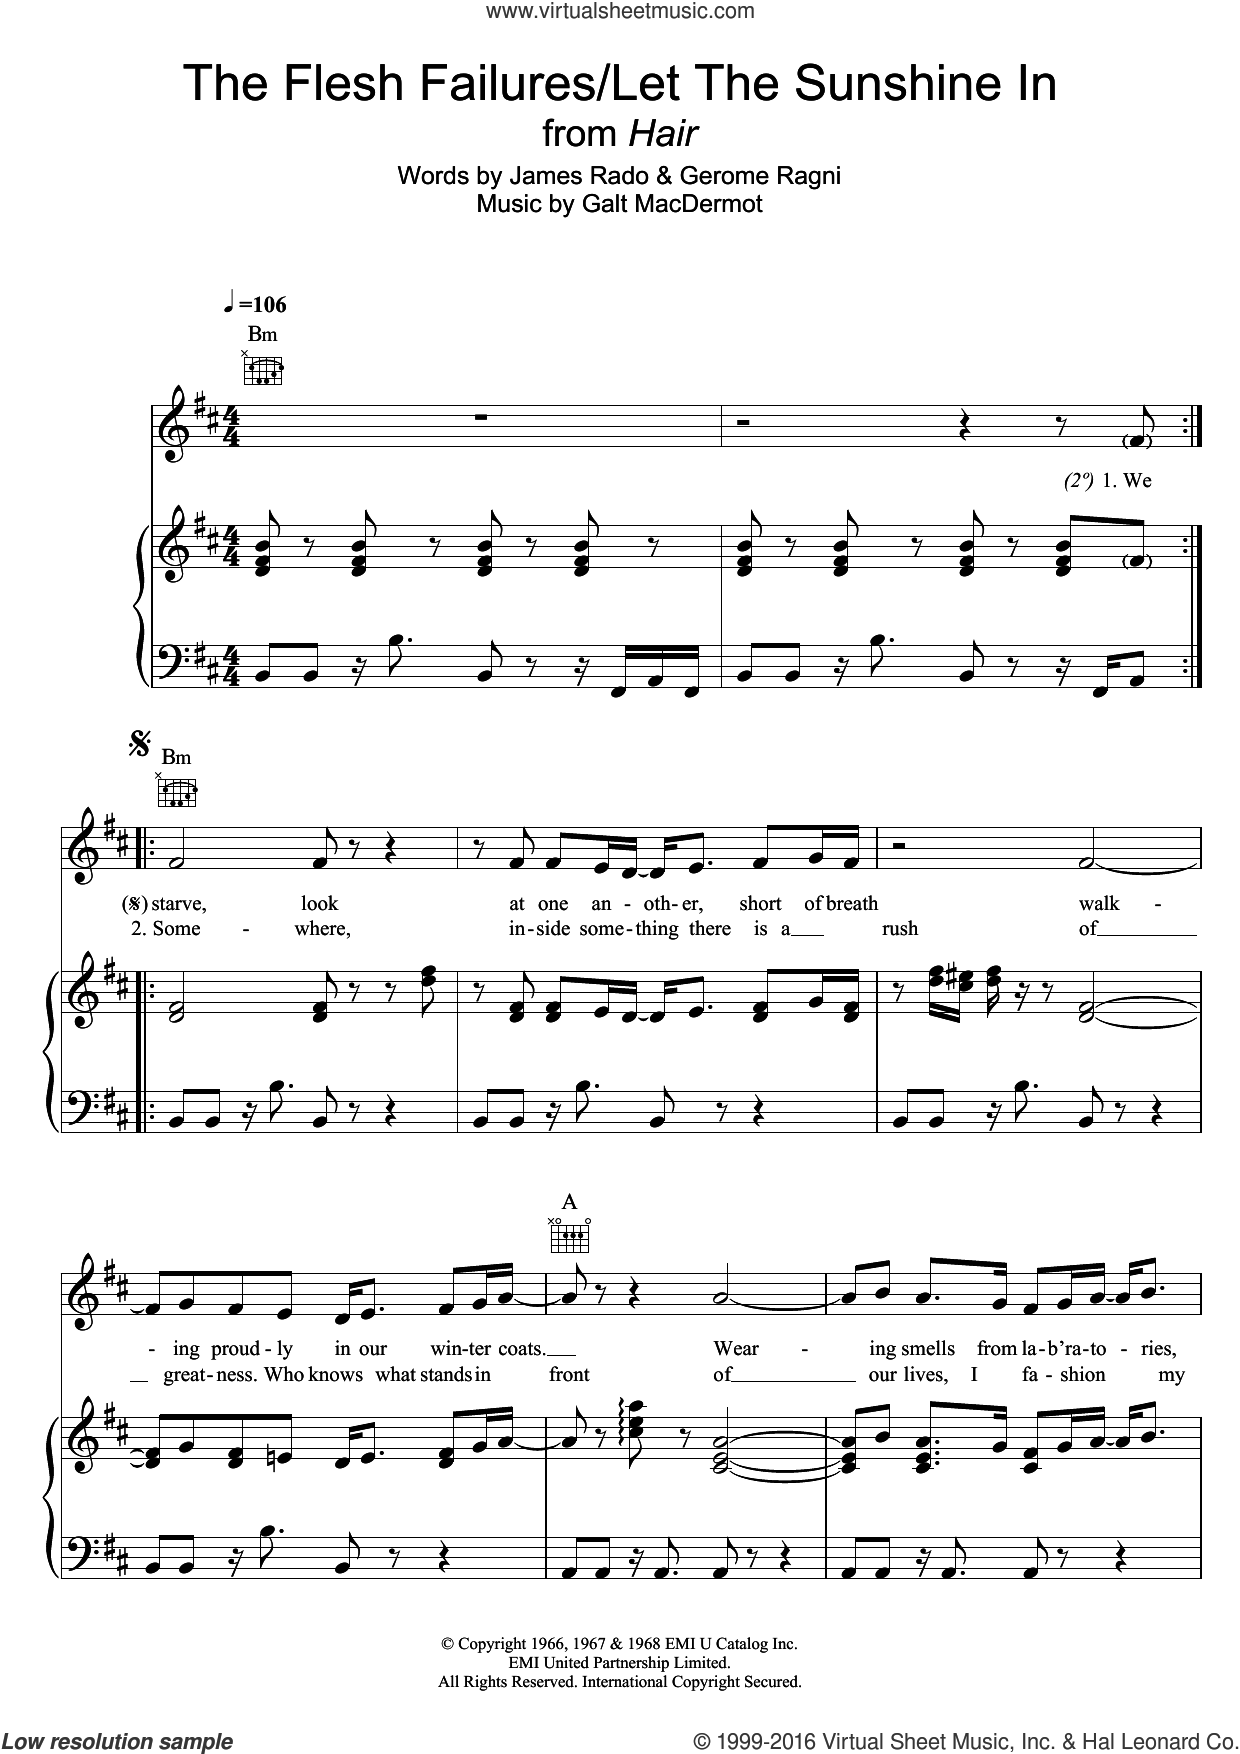 The Flesh Failures/Let The Sunshine In (from 'Hair') sheet music for voice, piano or guitar by James Rado